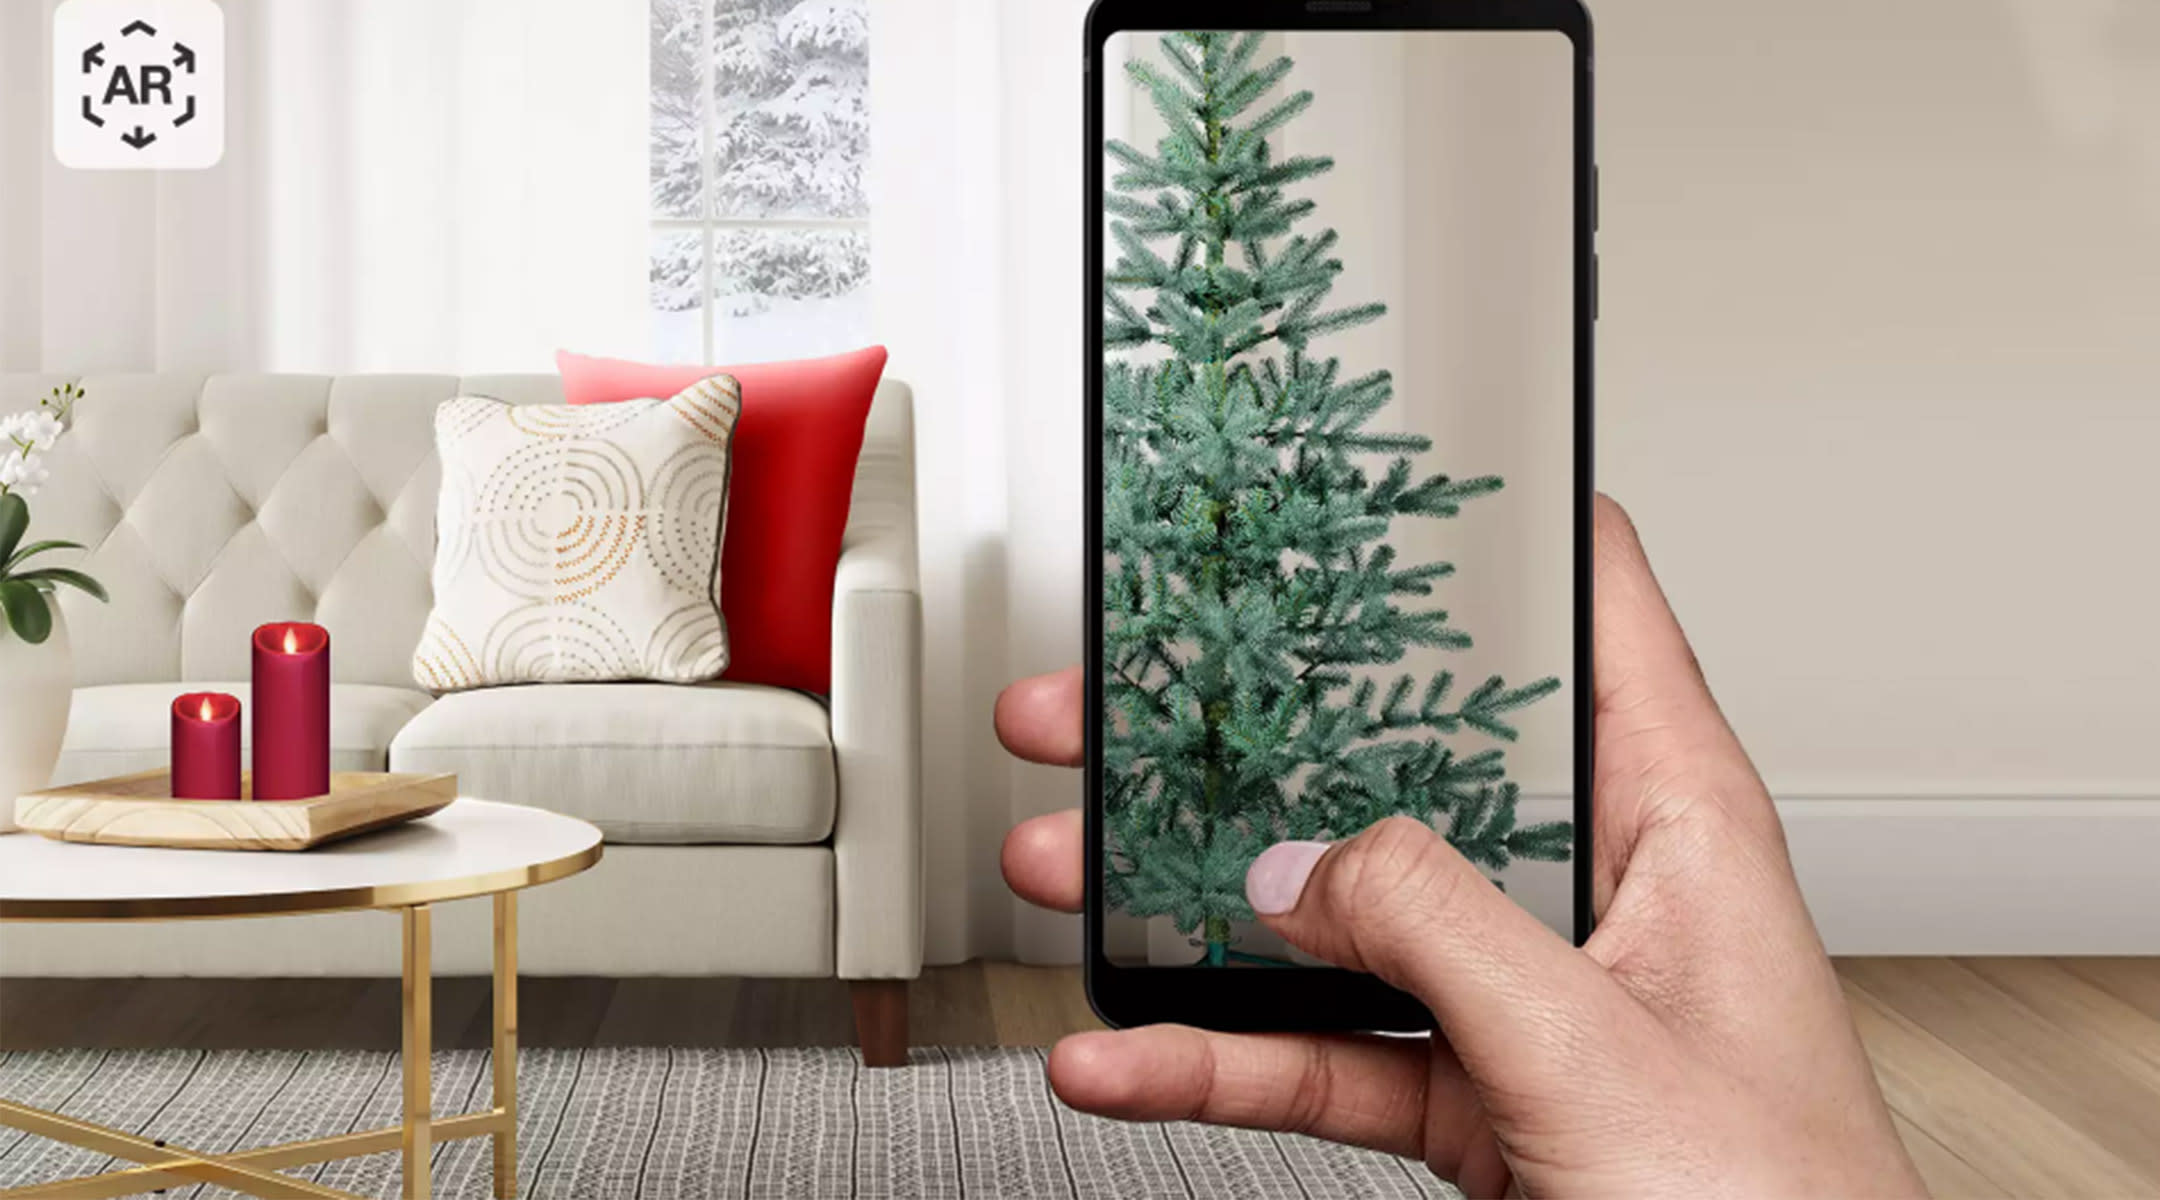 Target App 'See It In Your Space' Uses AR to Show Items in Your Home